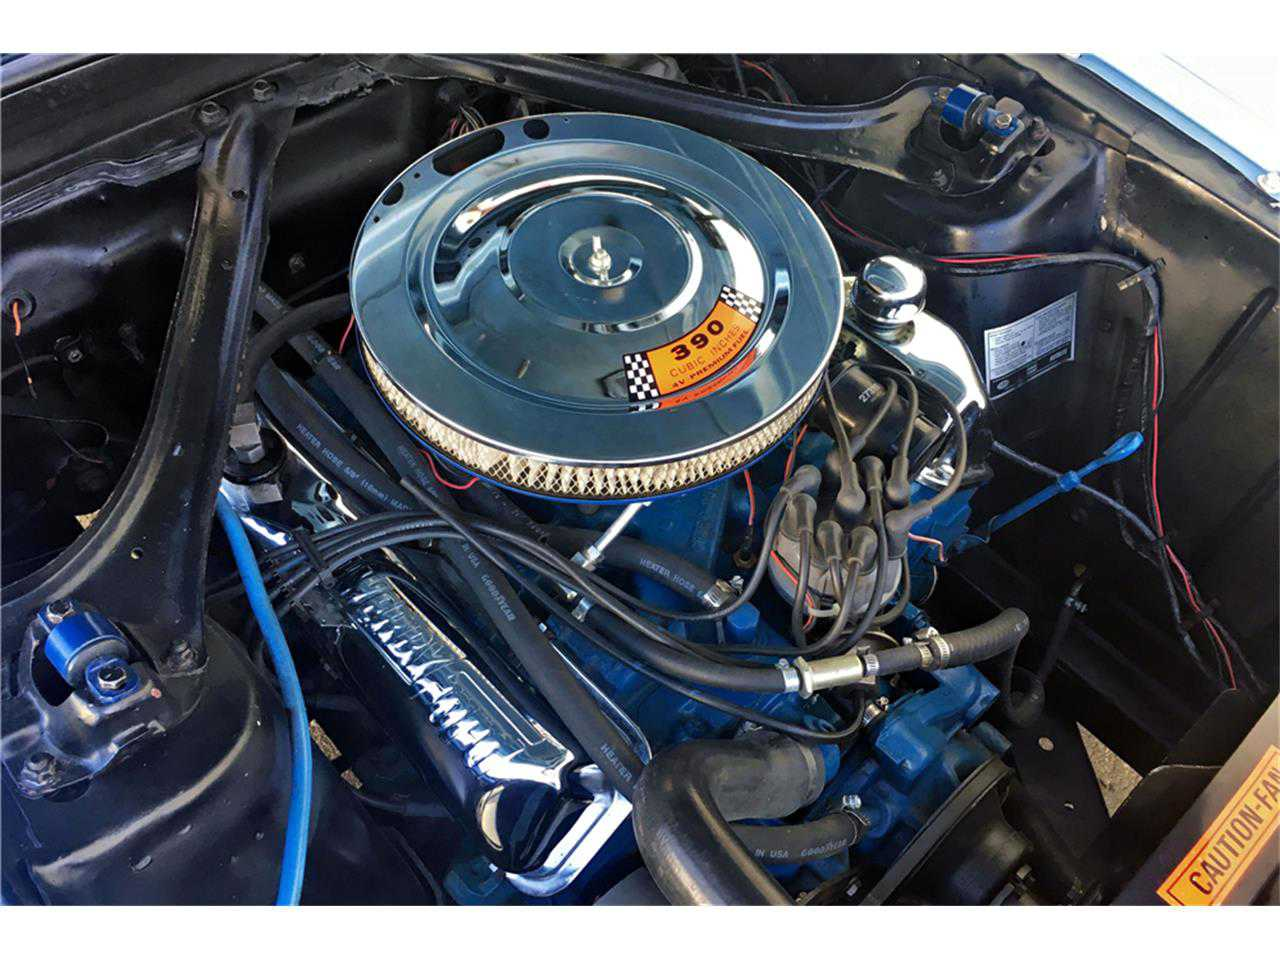 1969 Ford Mustang Mach 1 For Sale In 9t02s179558 Fastback 390